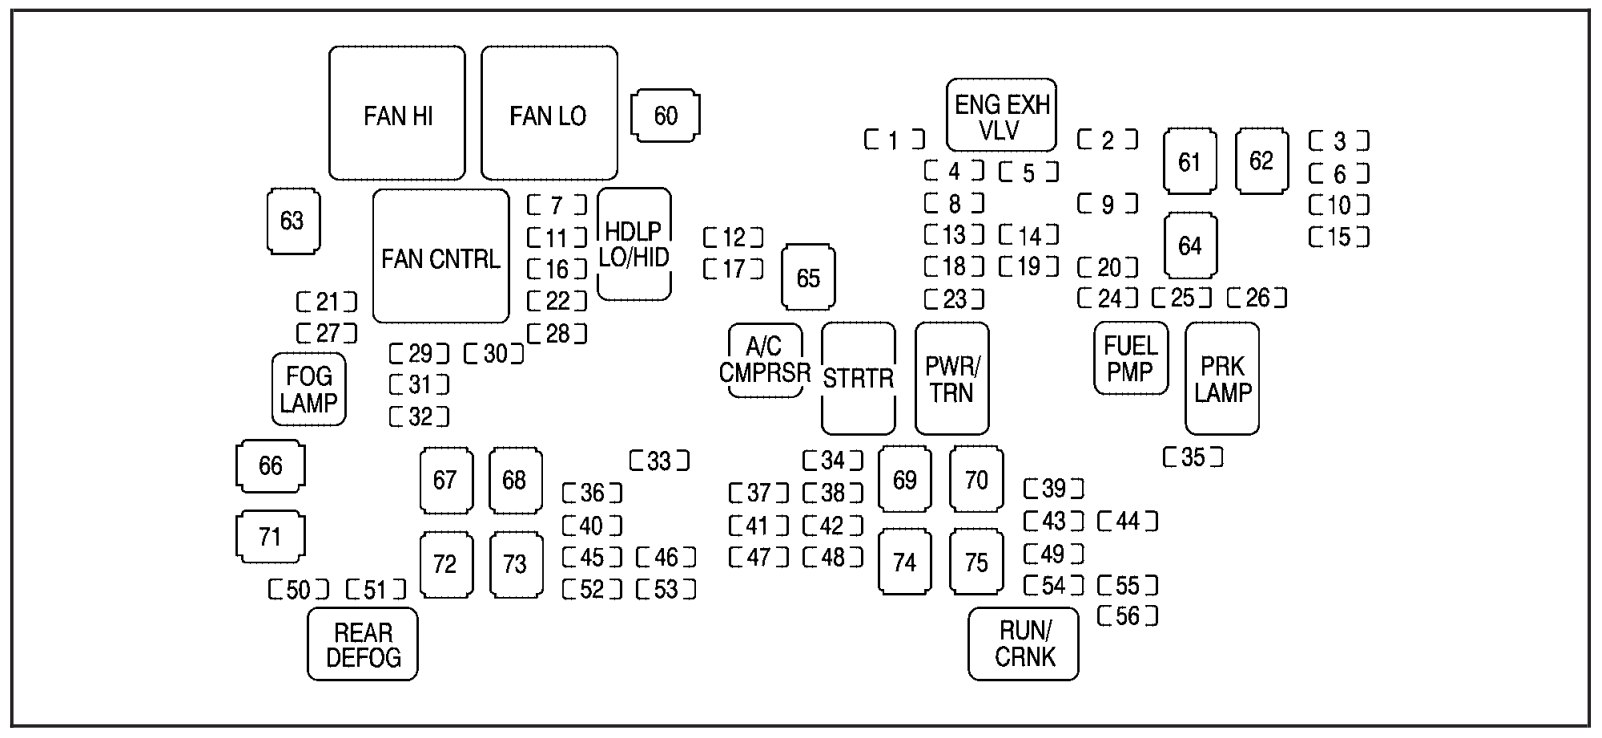 hight resolution of 07 tahoe fuse diagram wiring diagram todays 2004 chevy silverado fuse box diagram 2007 silverado fuse box diagram